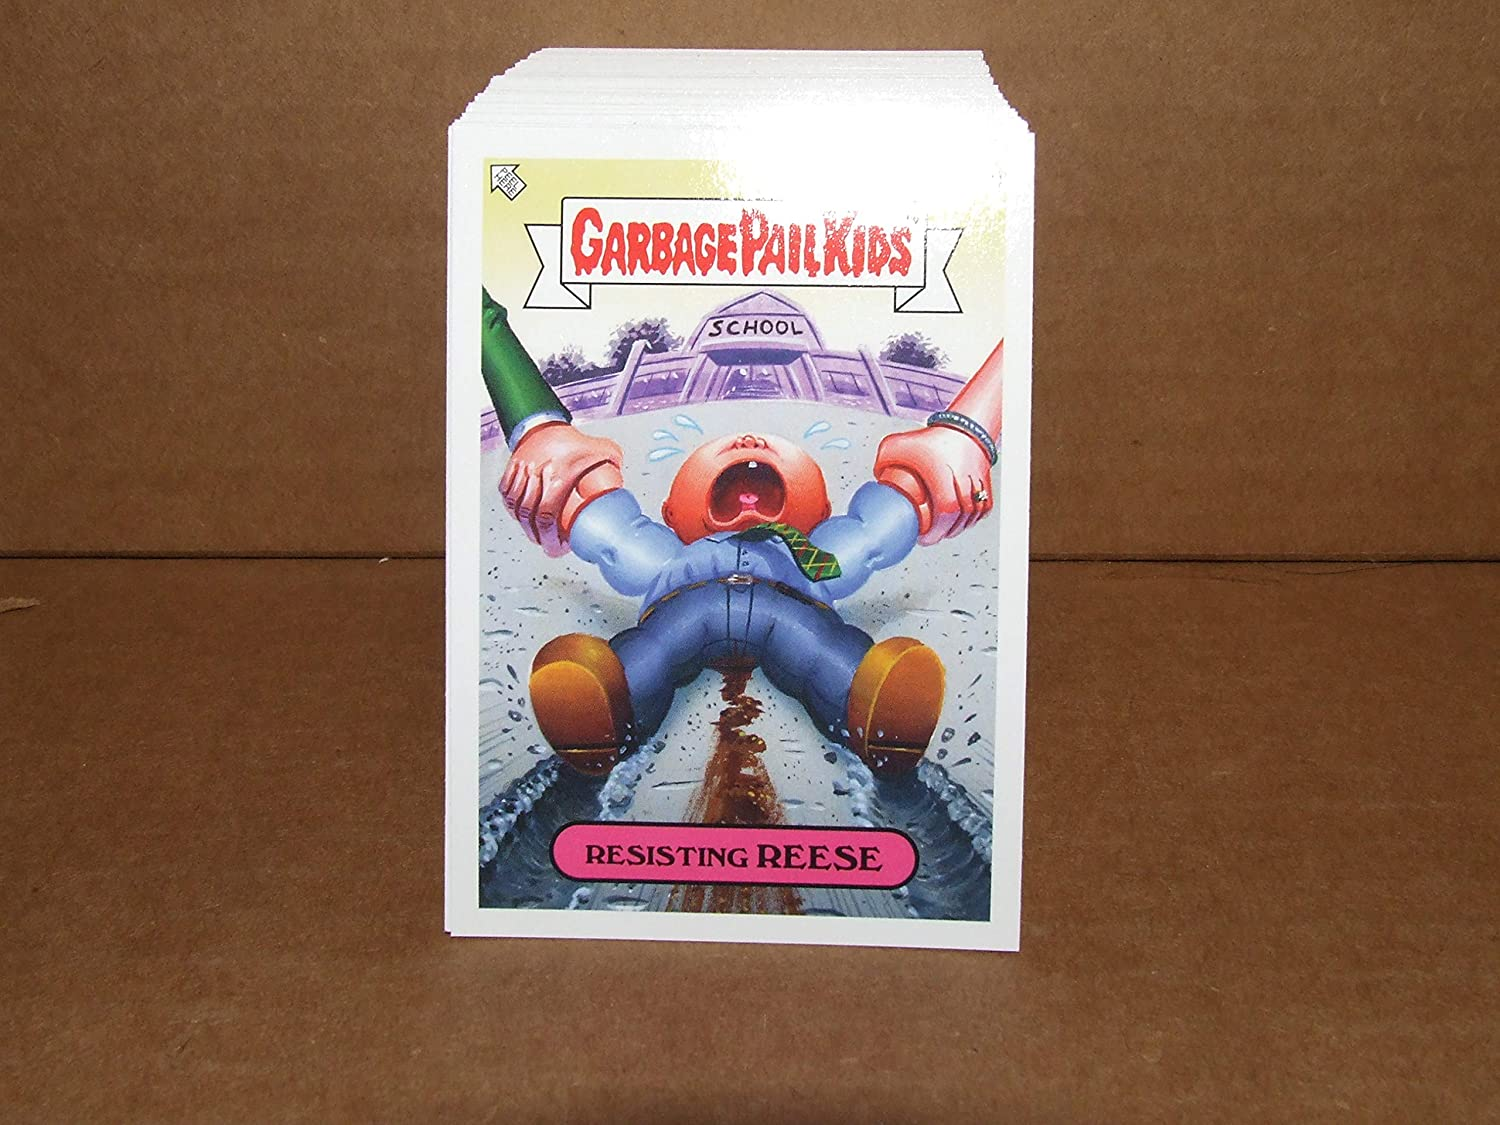 2020 Garbage Pail Kids Late to School complete base set 1-100a//b 200 total